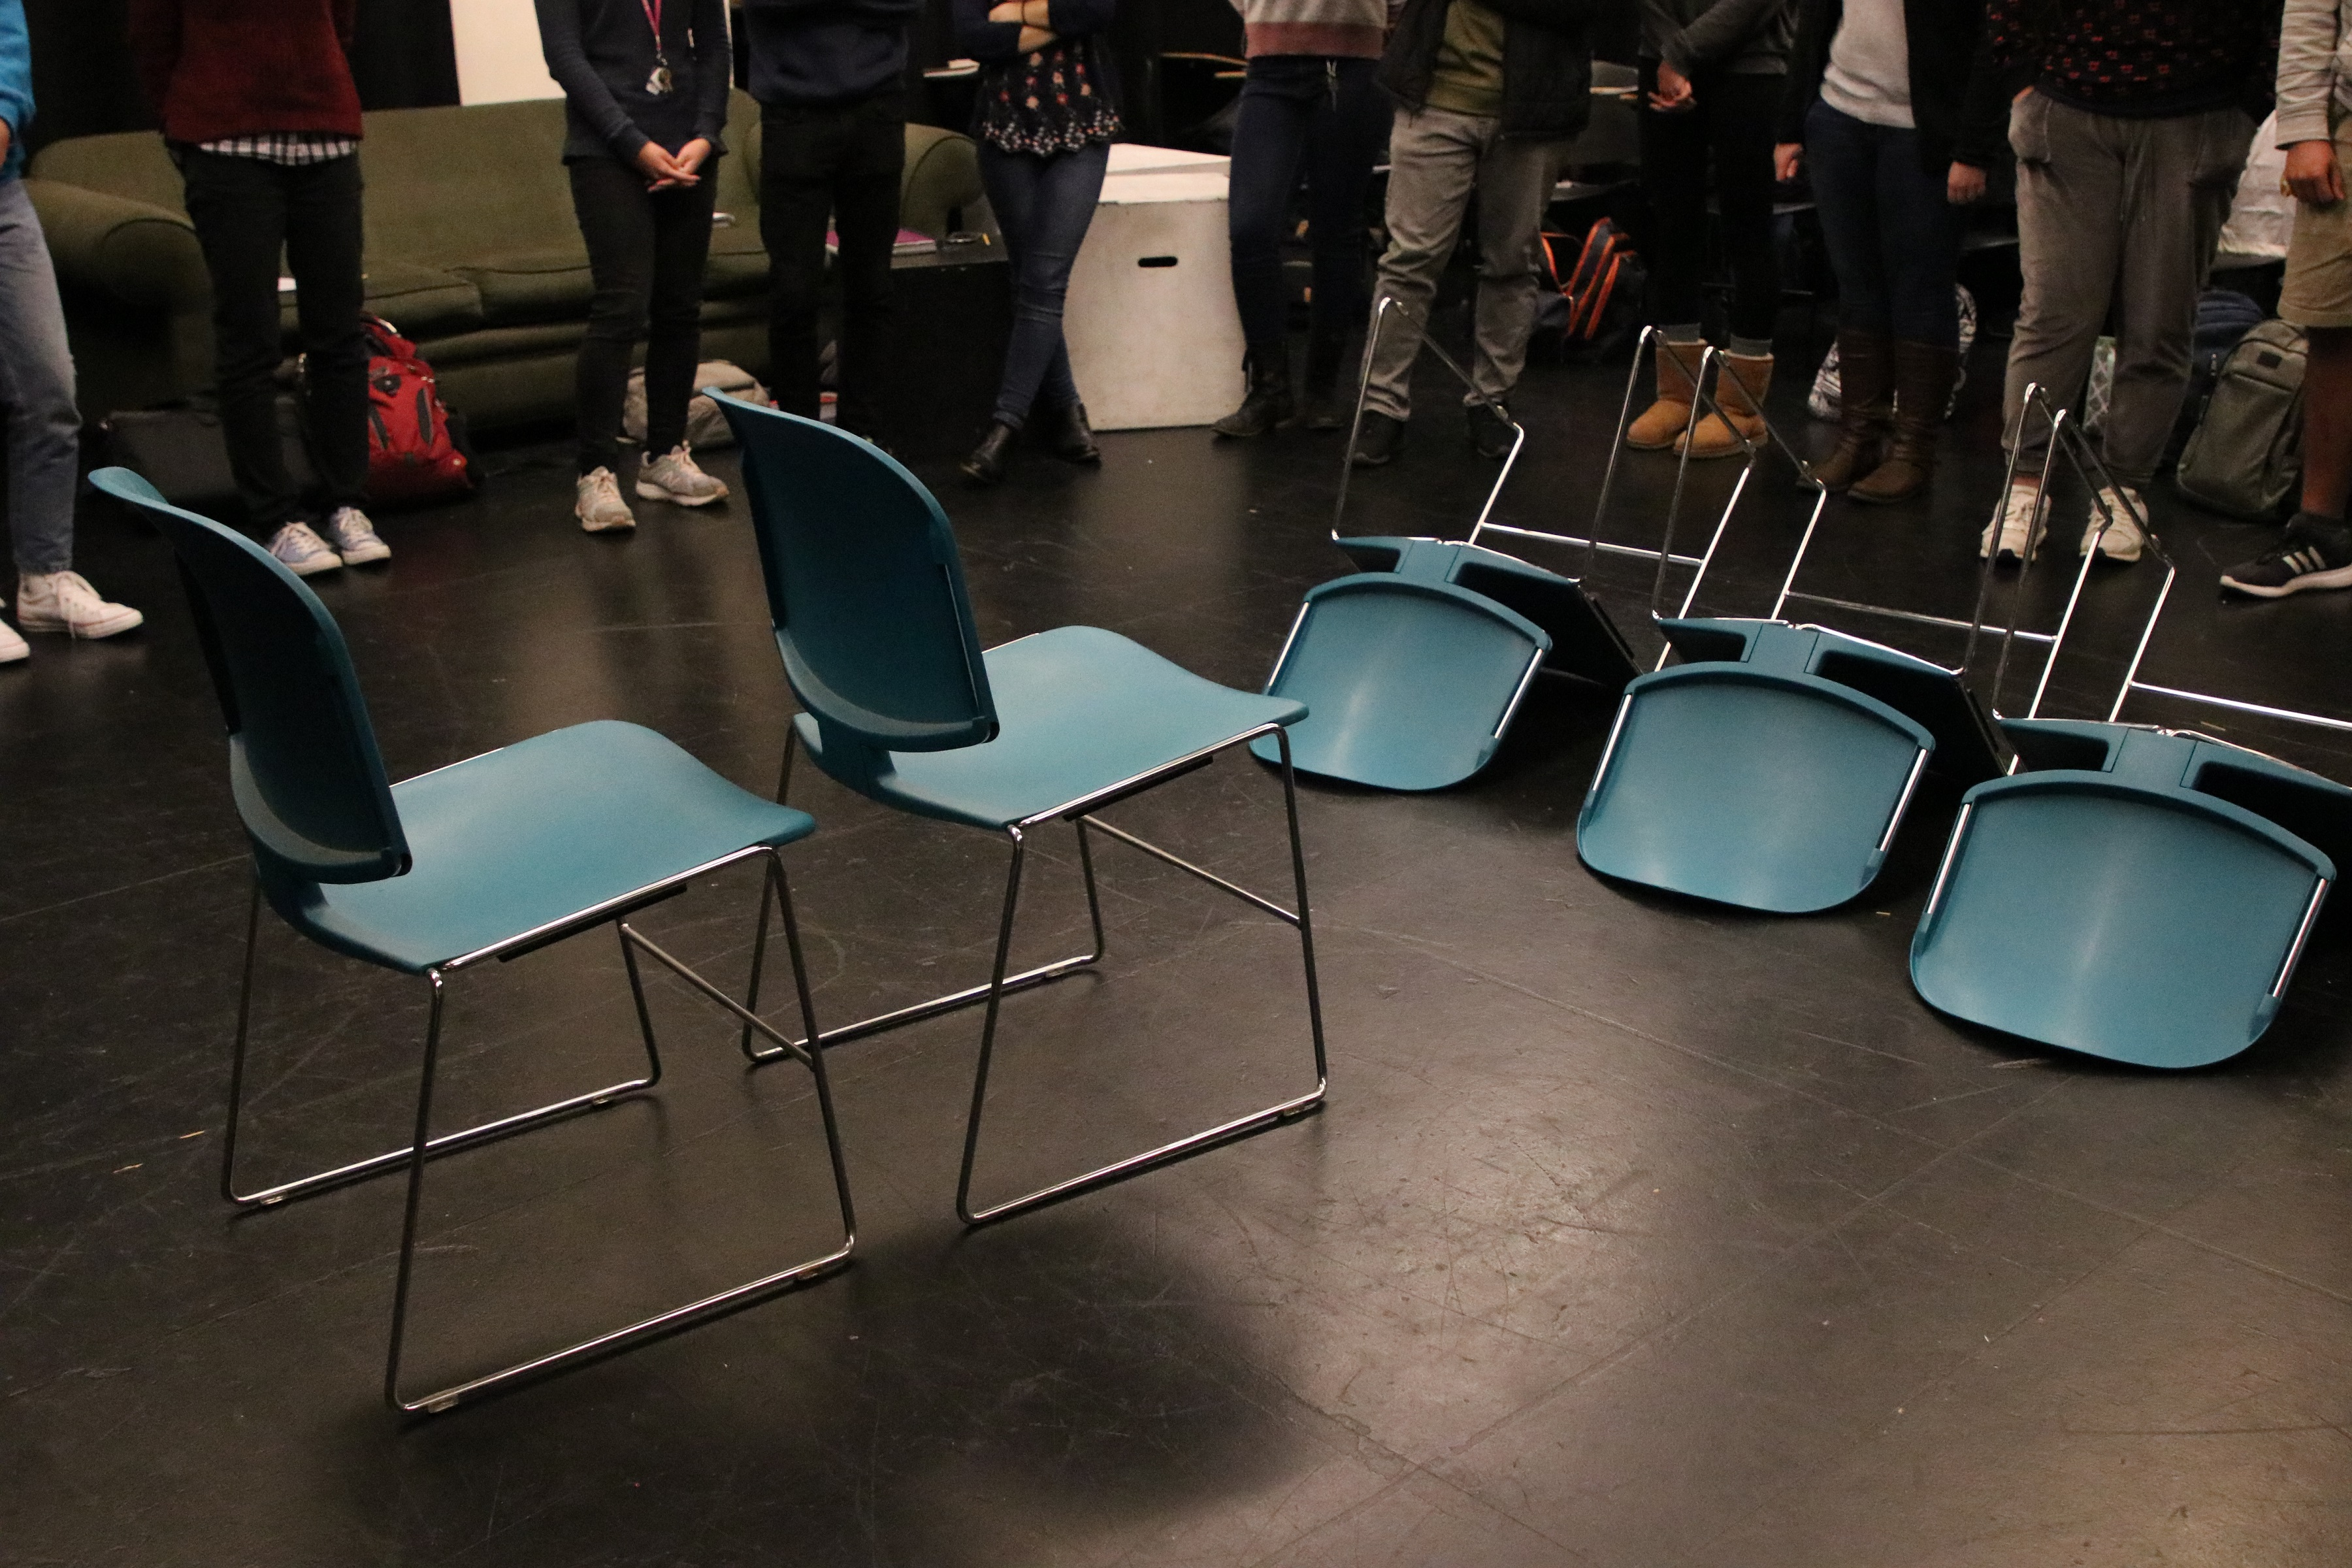 UC Davis University Honors Program DRA 1 Course - Improv Lesson Arranging Chairs